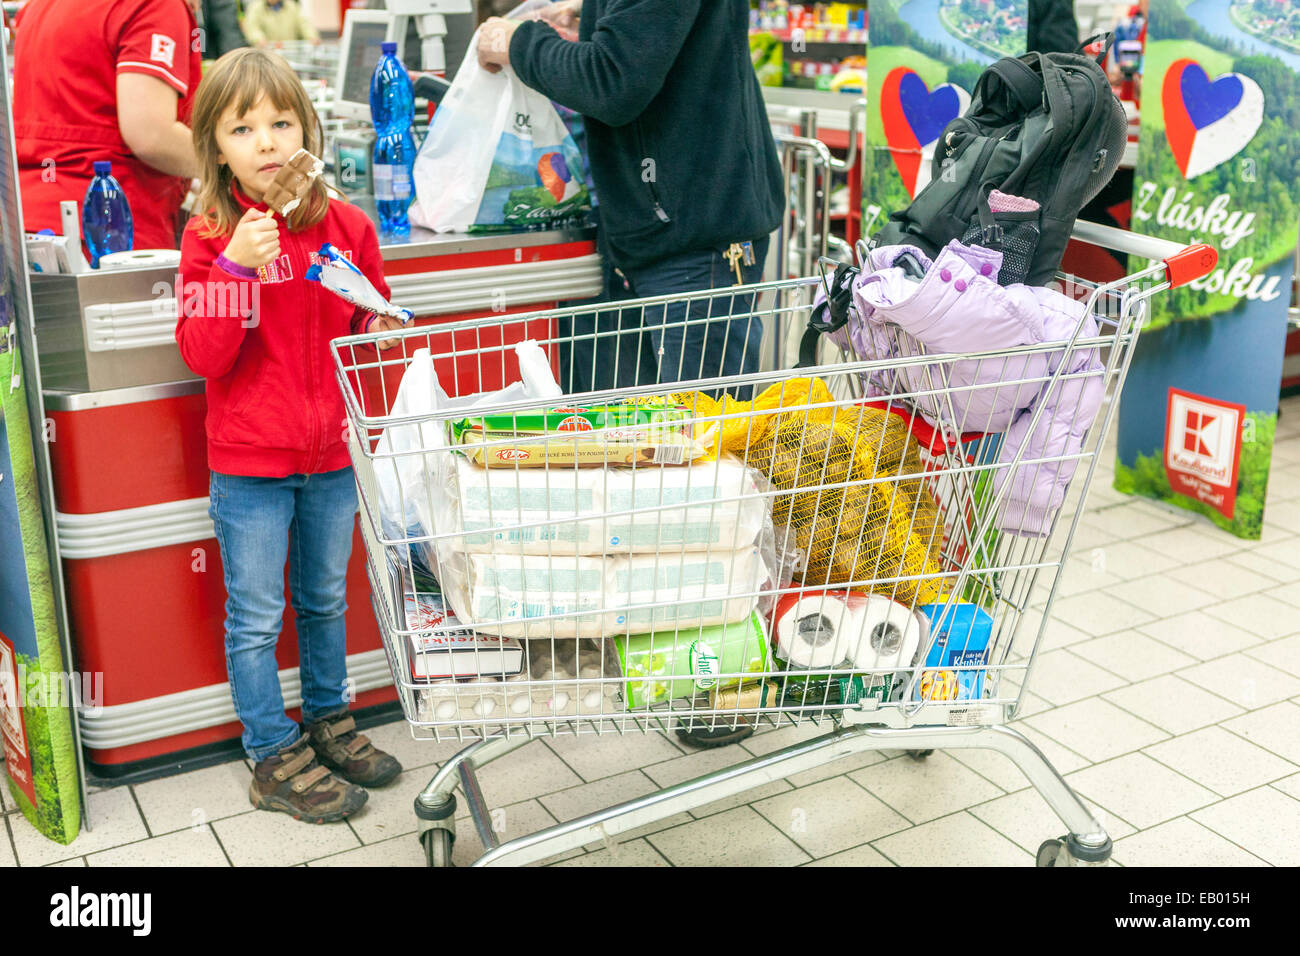 People shopping, Supermarket trolley Prague, Czech Republic Europe - Stock Image